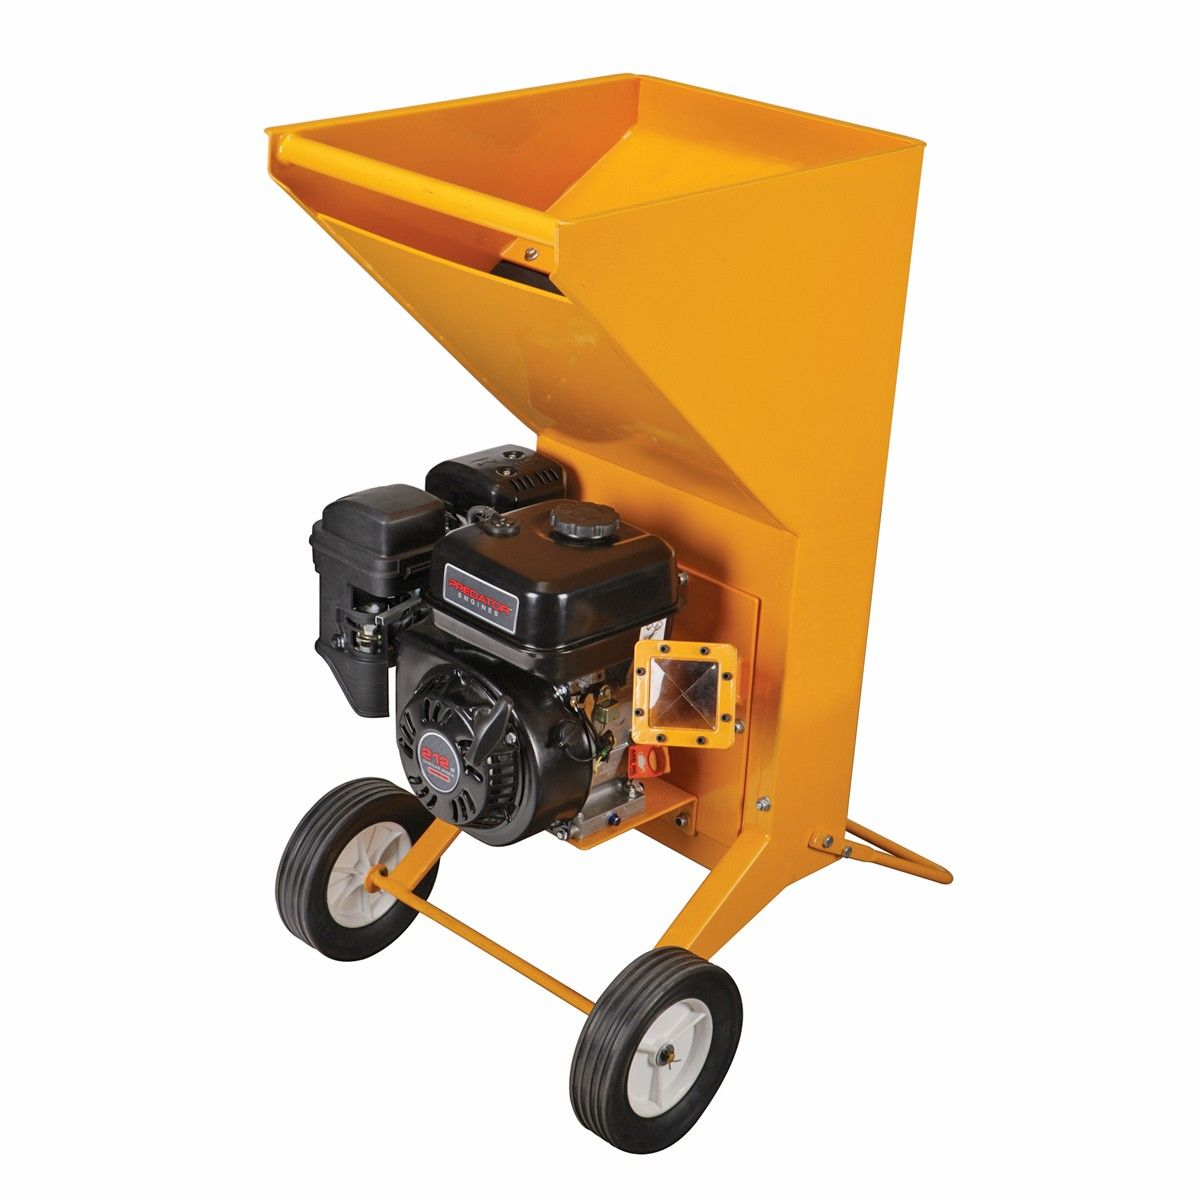 6 5 HP (212cc) Chipper Shredder | Outdoor Tools in 2019